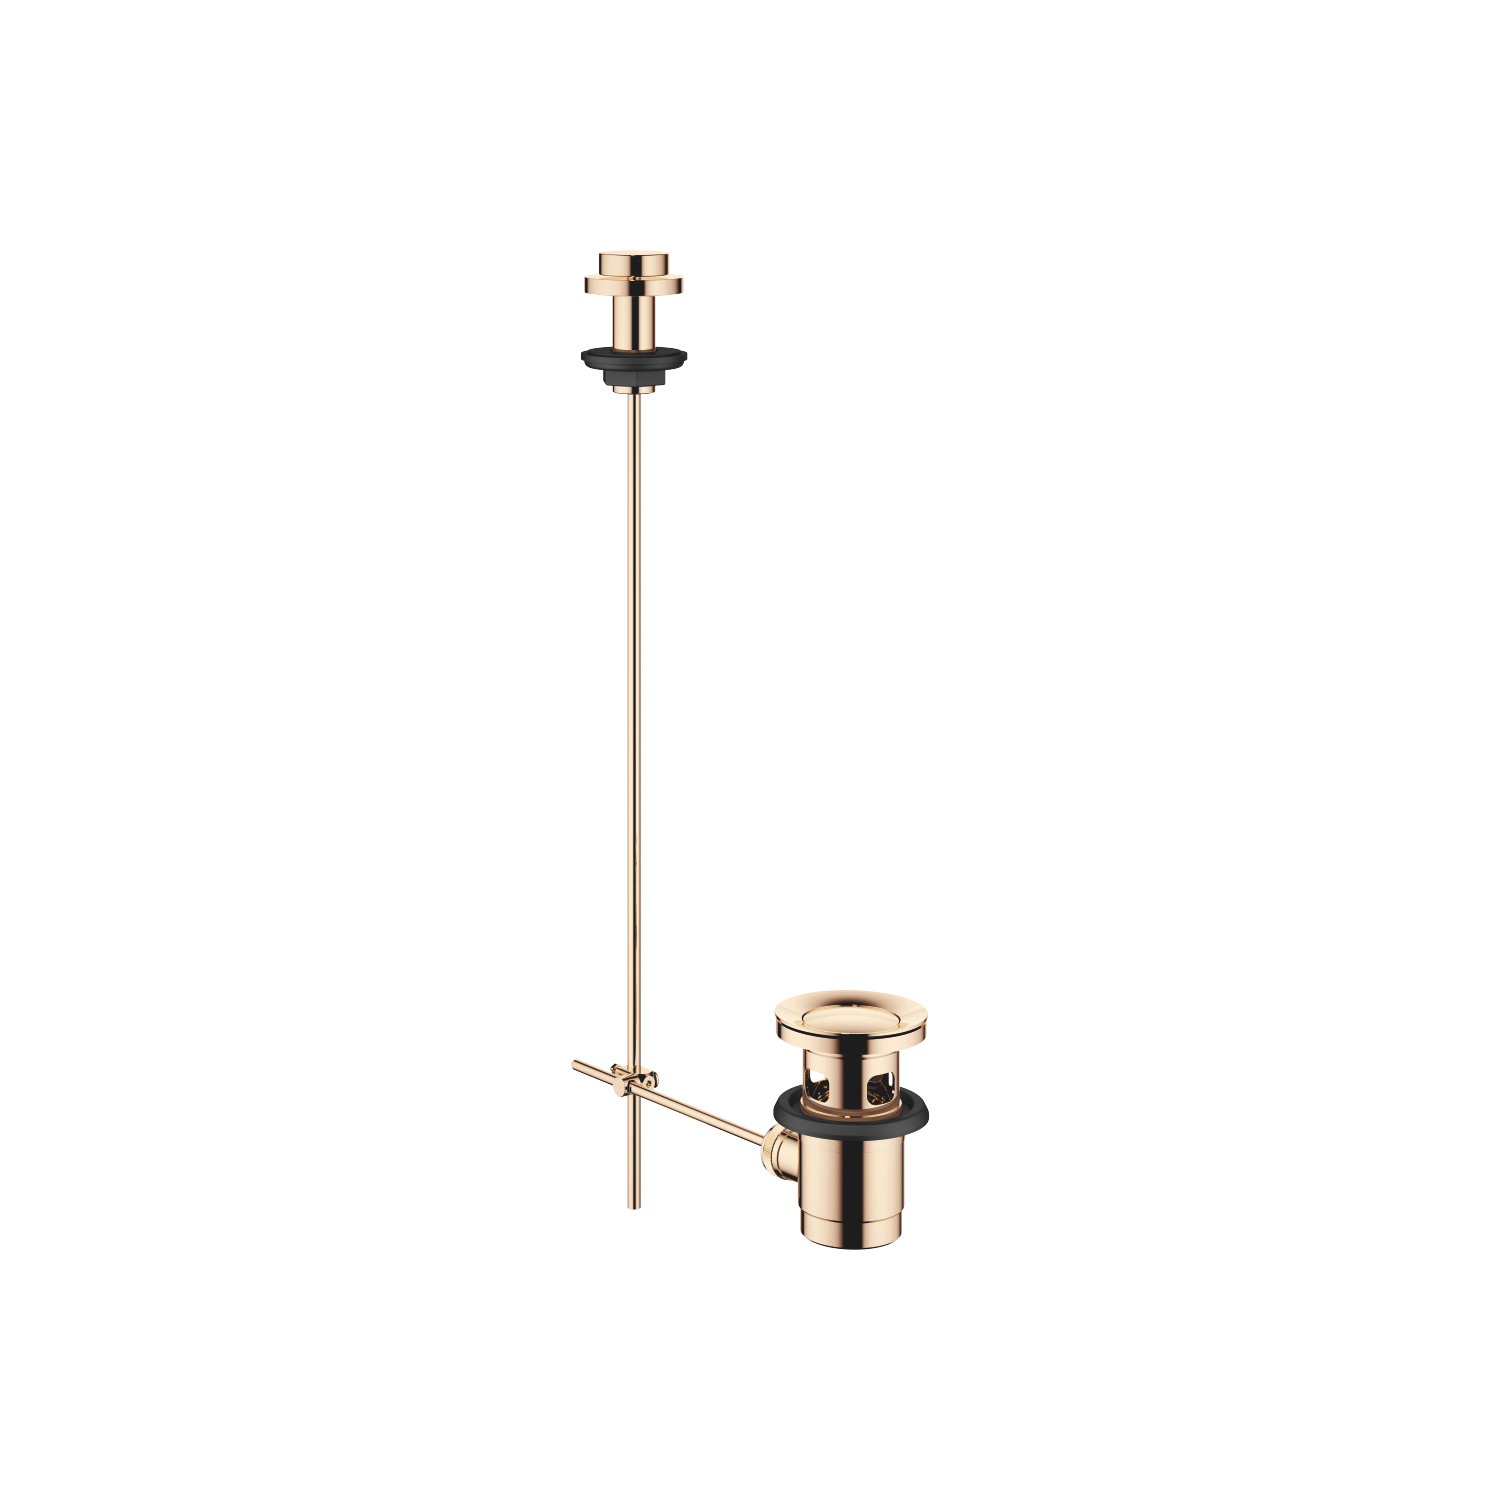 "Basin Waste with knob for deck mounting 1 1/4"" - Champagne"